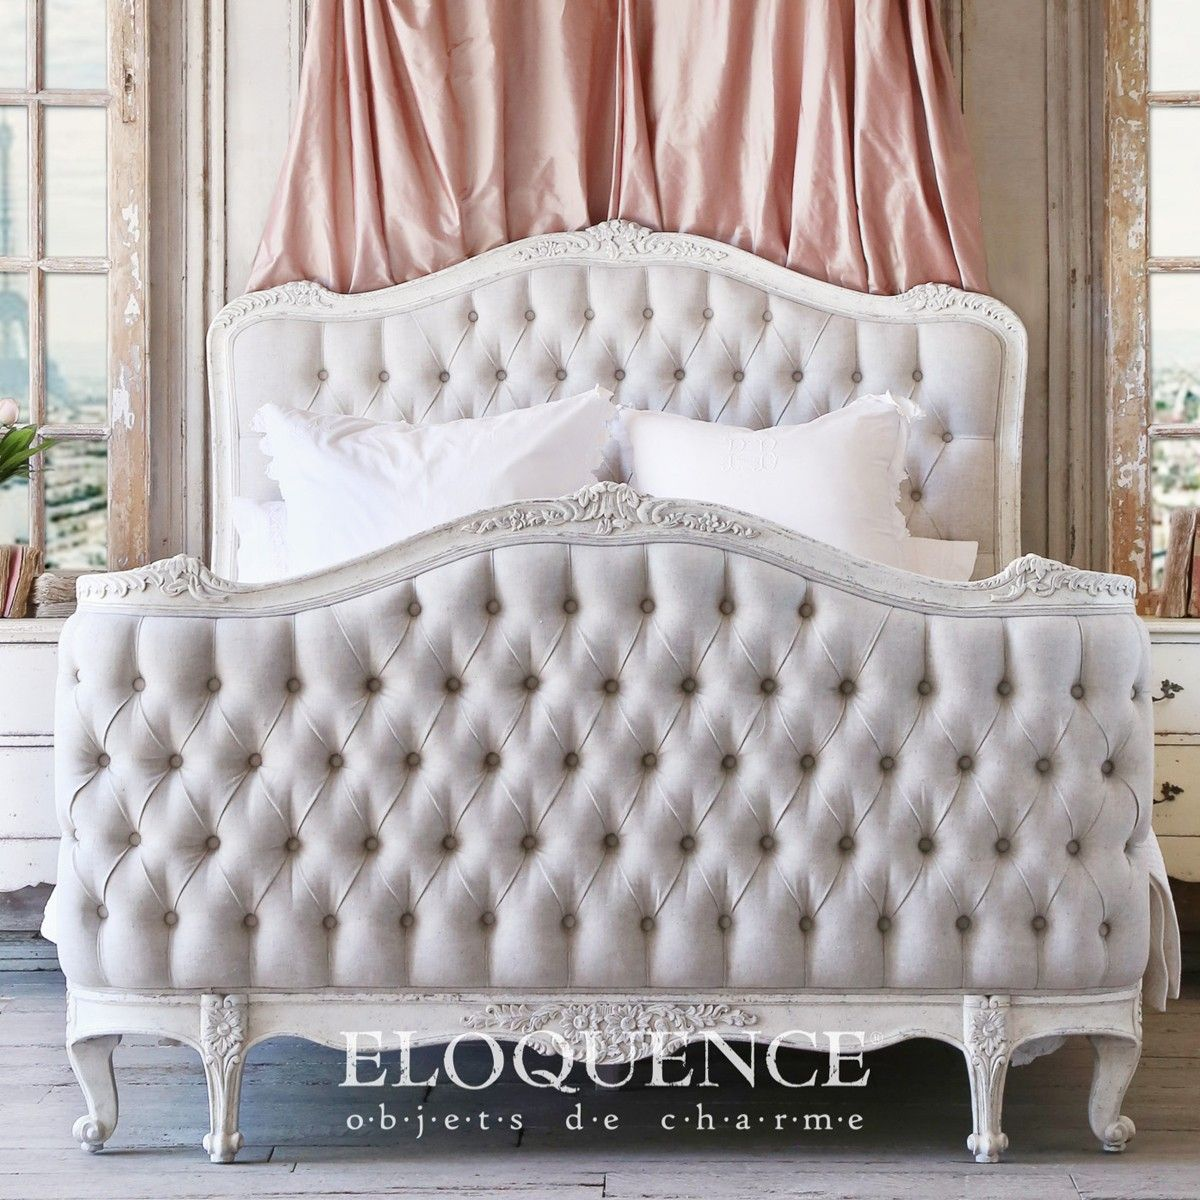 Eloquence Collection   Beds U0026 Headboards   ELOQUENCE Sophia Queen Bed In  Weathered White   Cottage Haven Interiors Good Ideas